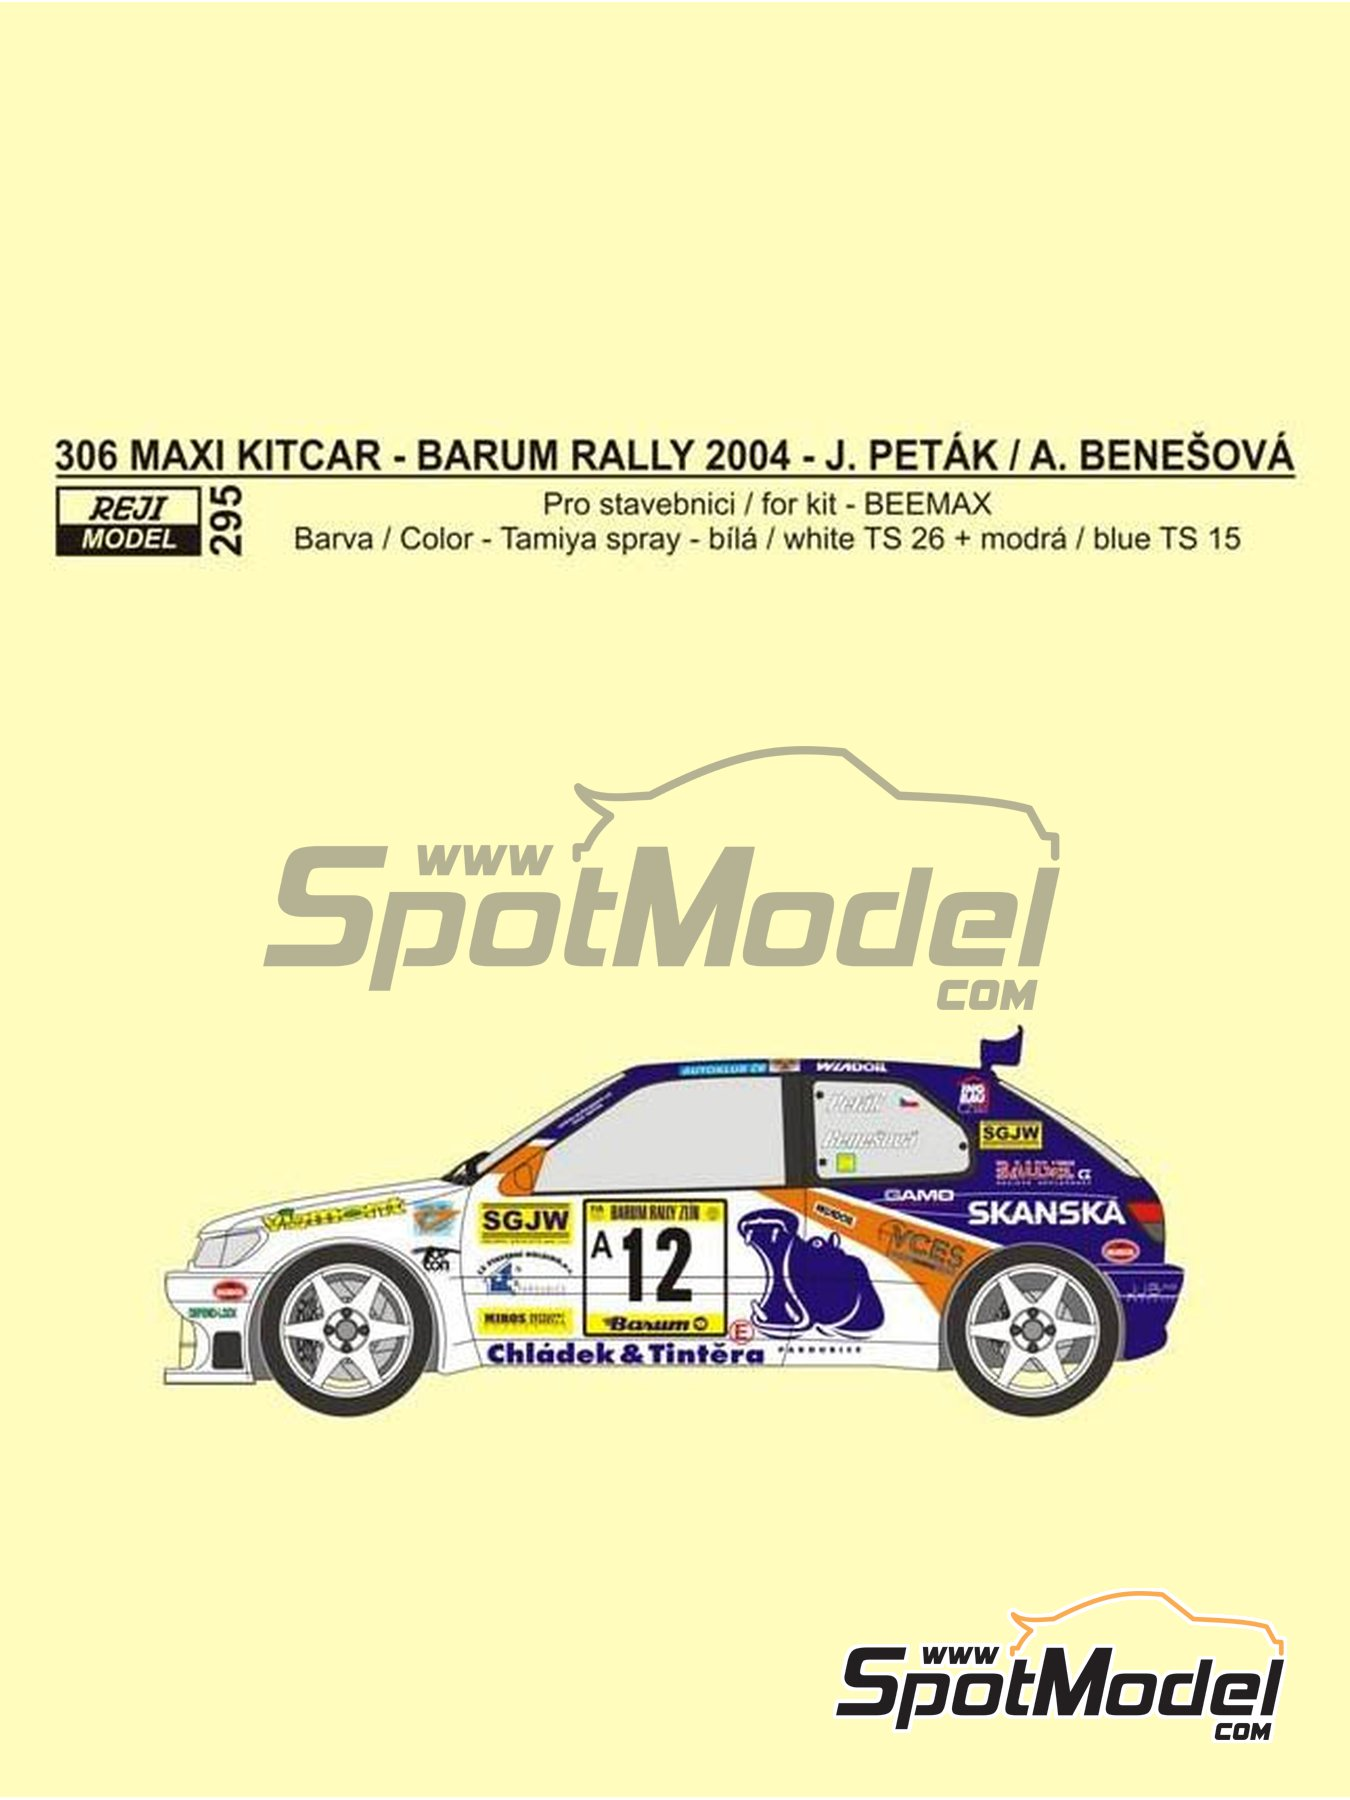 Peugeot 306 Maxi Kitcar - Barum Czech Rally 2004 | Marking / livery in 1/24 scale manufactured by Reji Model (ref. REJI-295) image